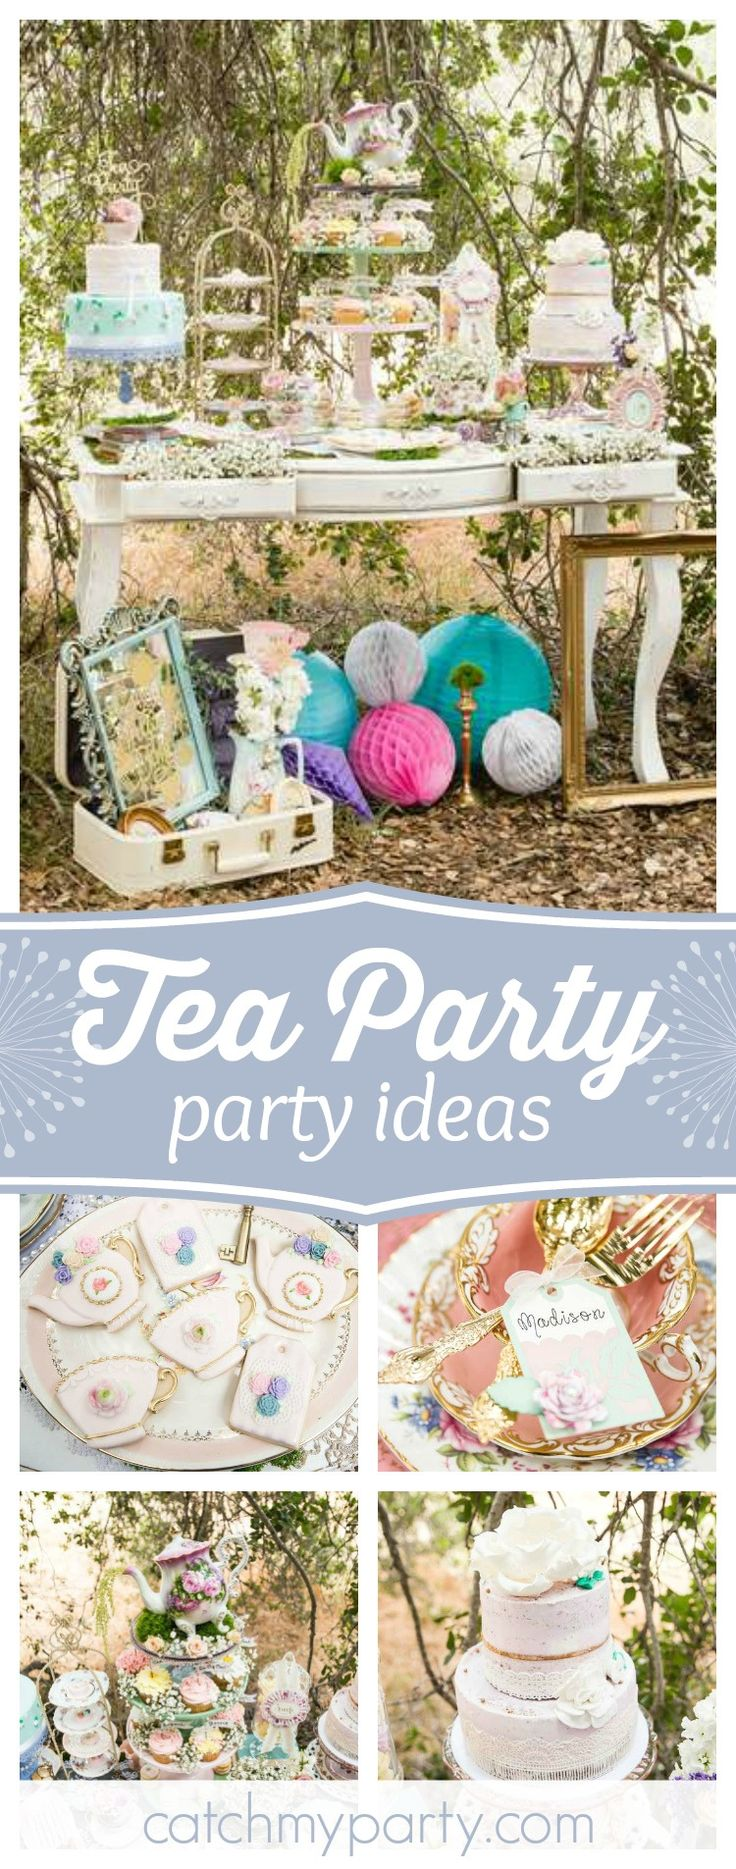 831 best garden party ideas images on pinterest for Garden tea party table decorations